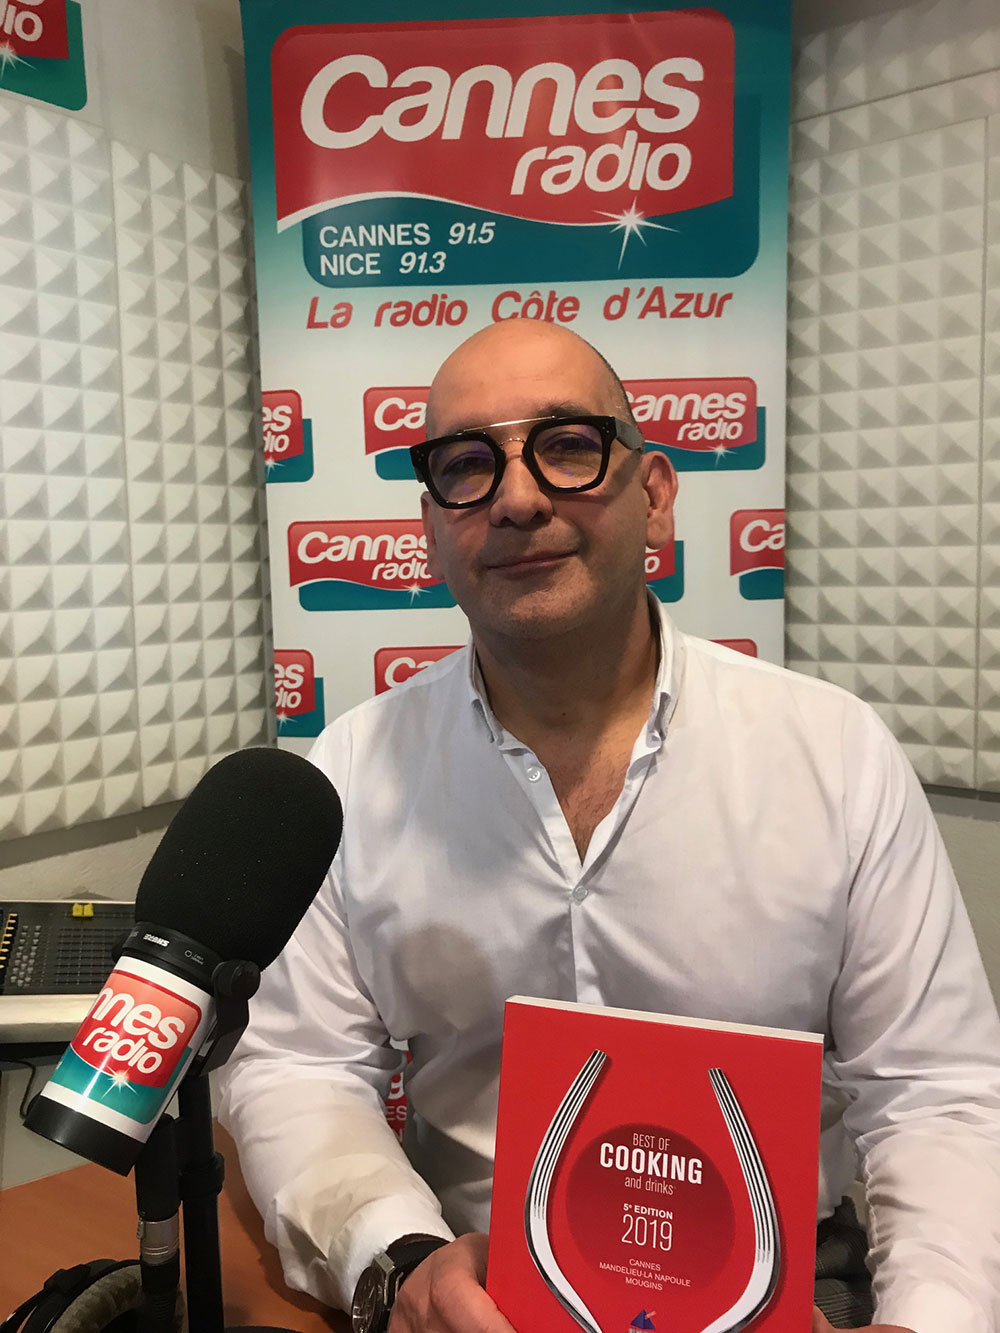 Cannes-radio_web.jpg